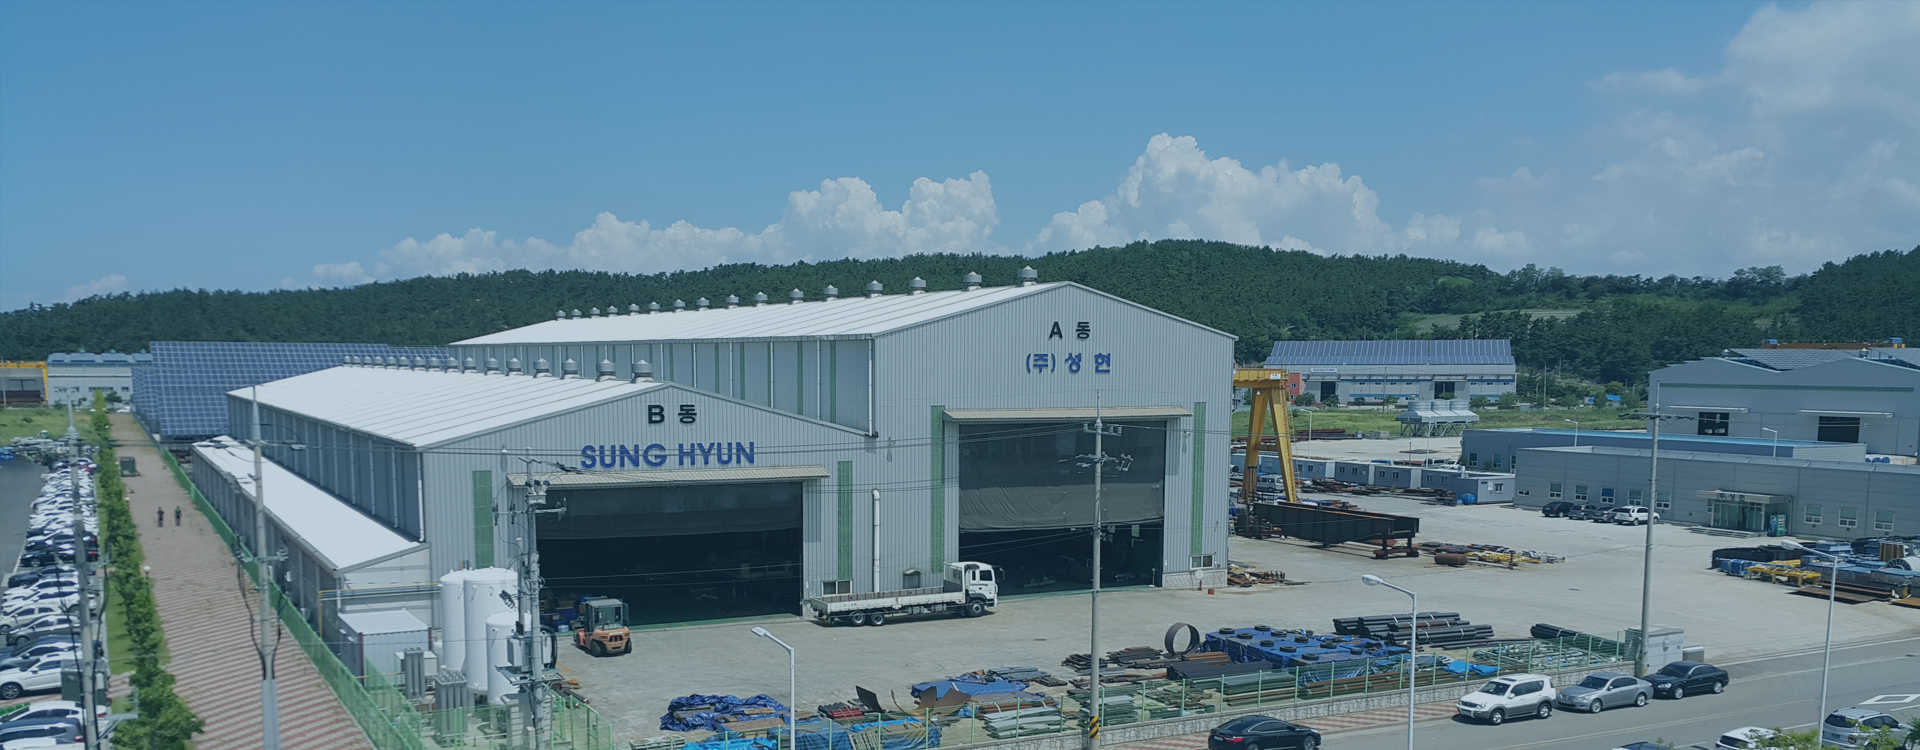 Reliable Fabricator in the Plant Industries SUNGHYUN is the expert in customized equipment fabrication for power and oil & gas industries